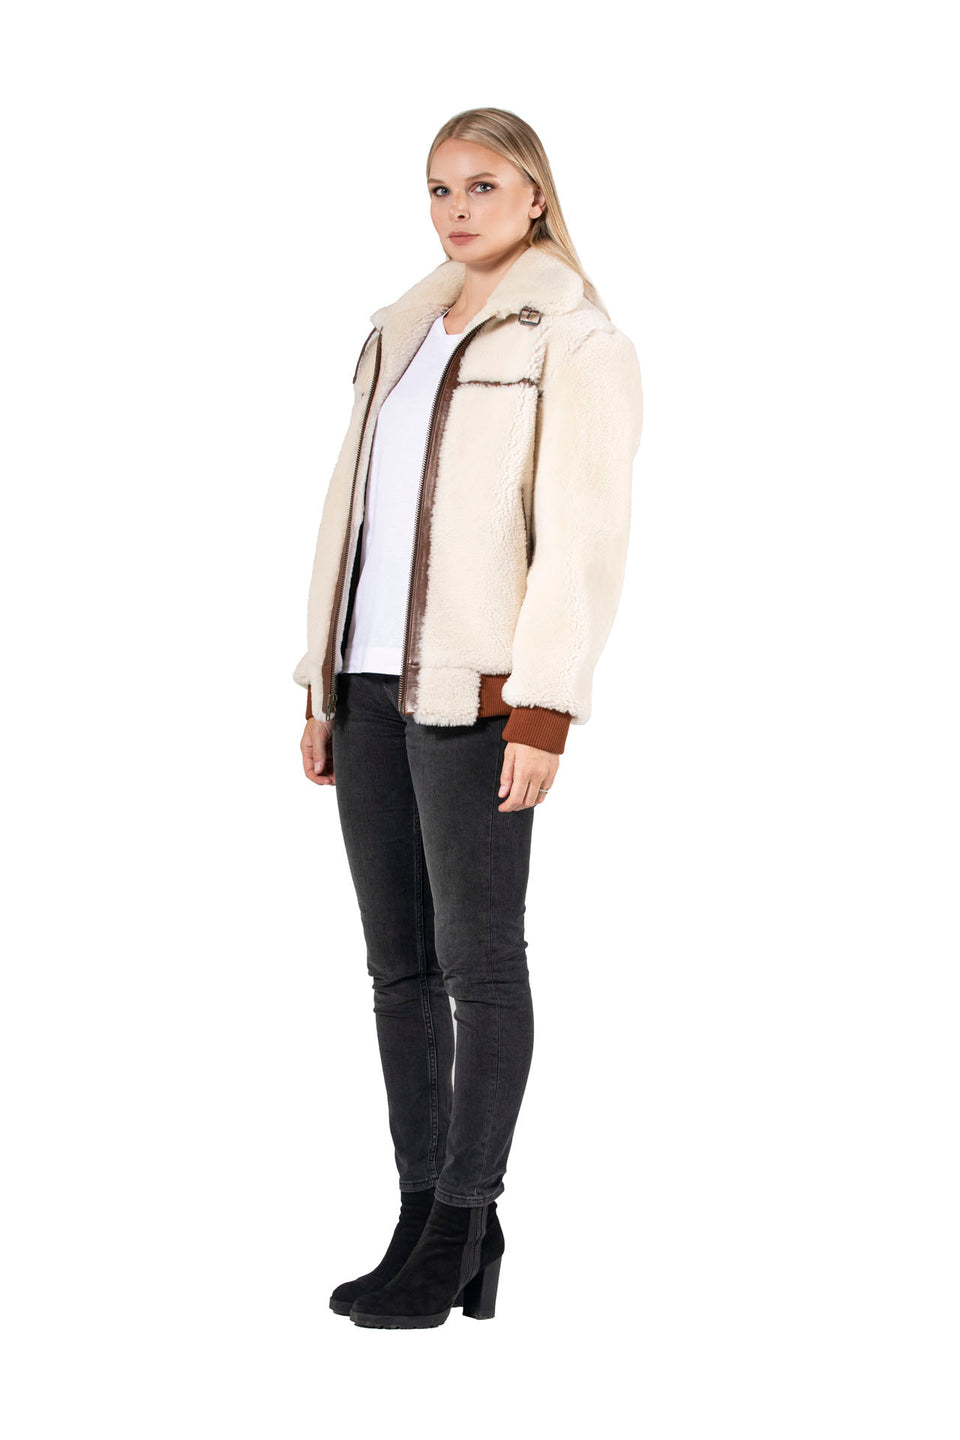 Scarlett - Women's Shearling Jacket Fashion 2020